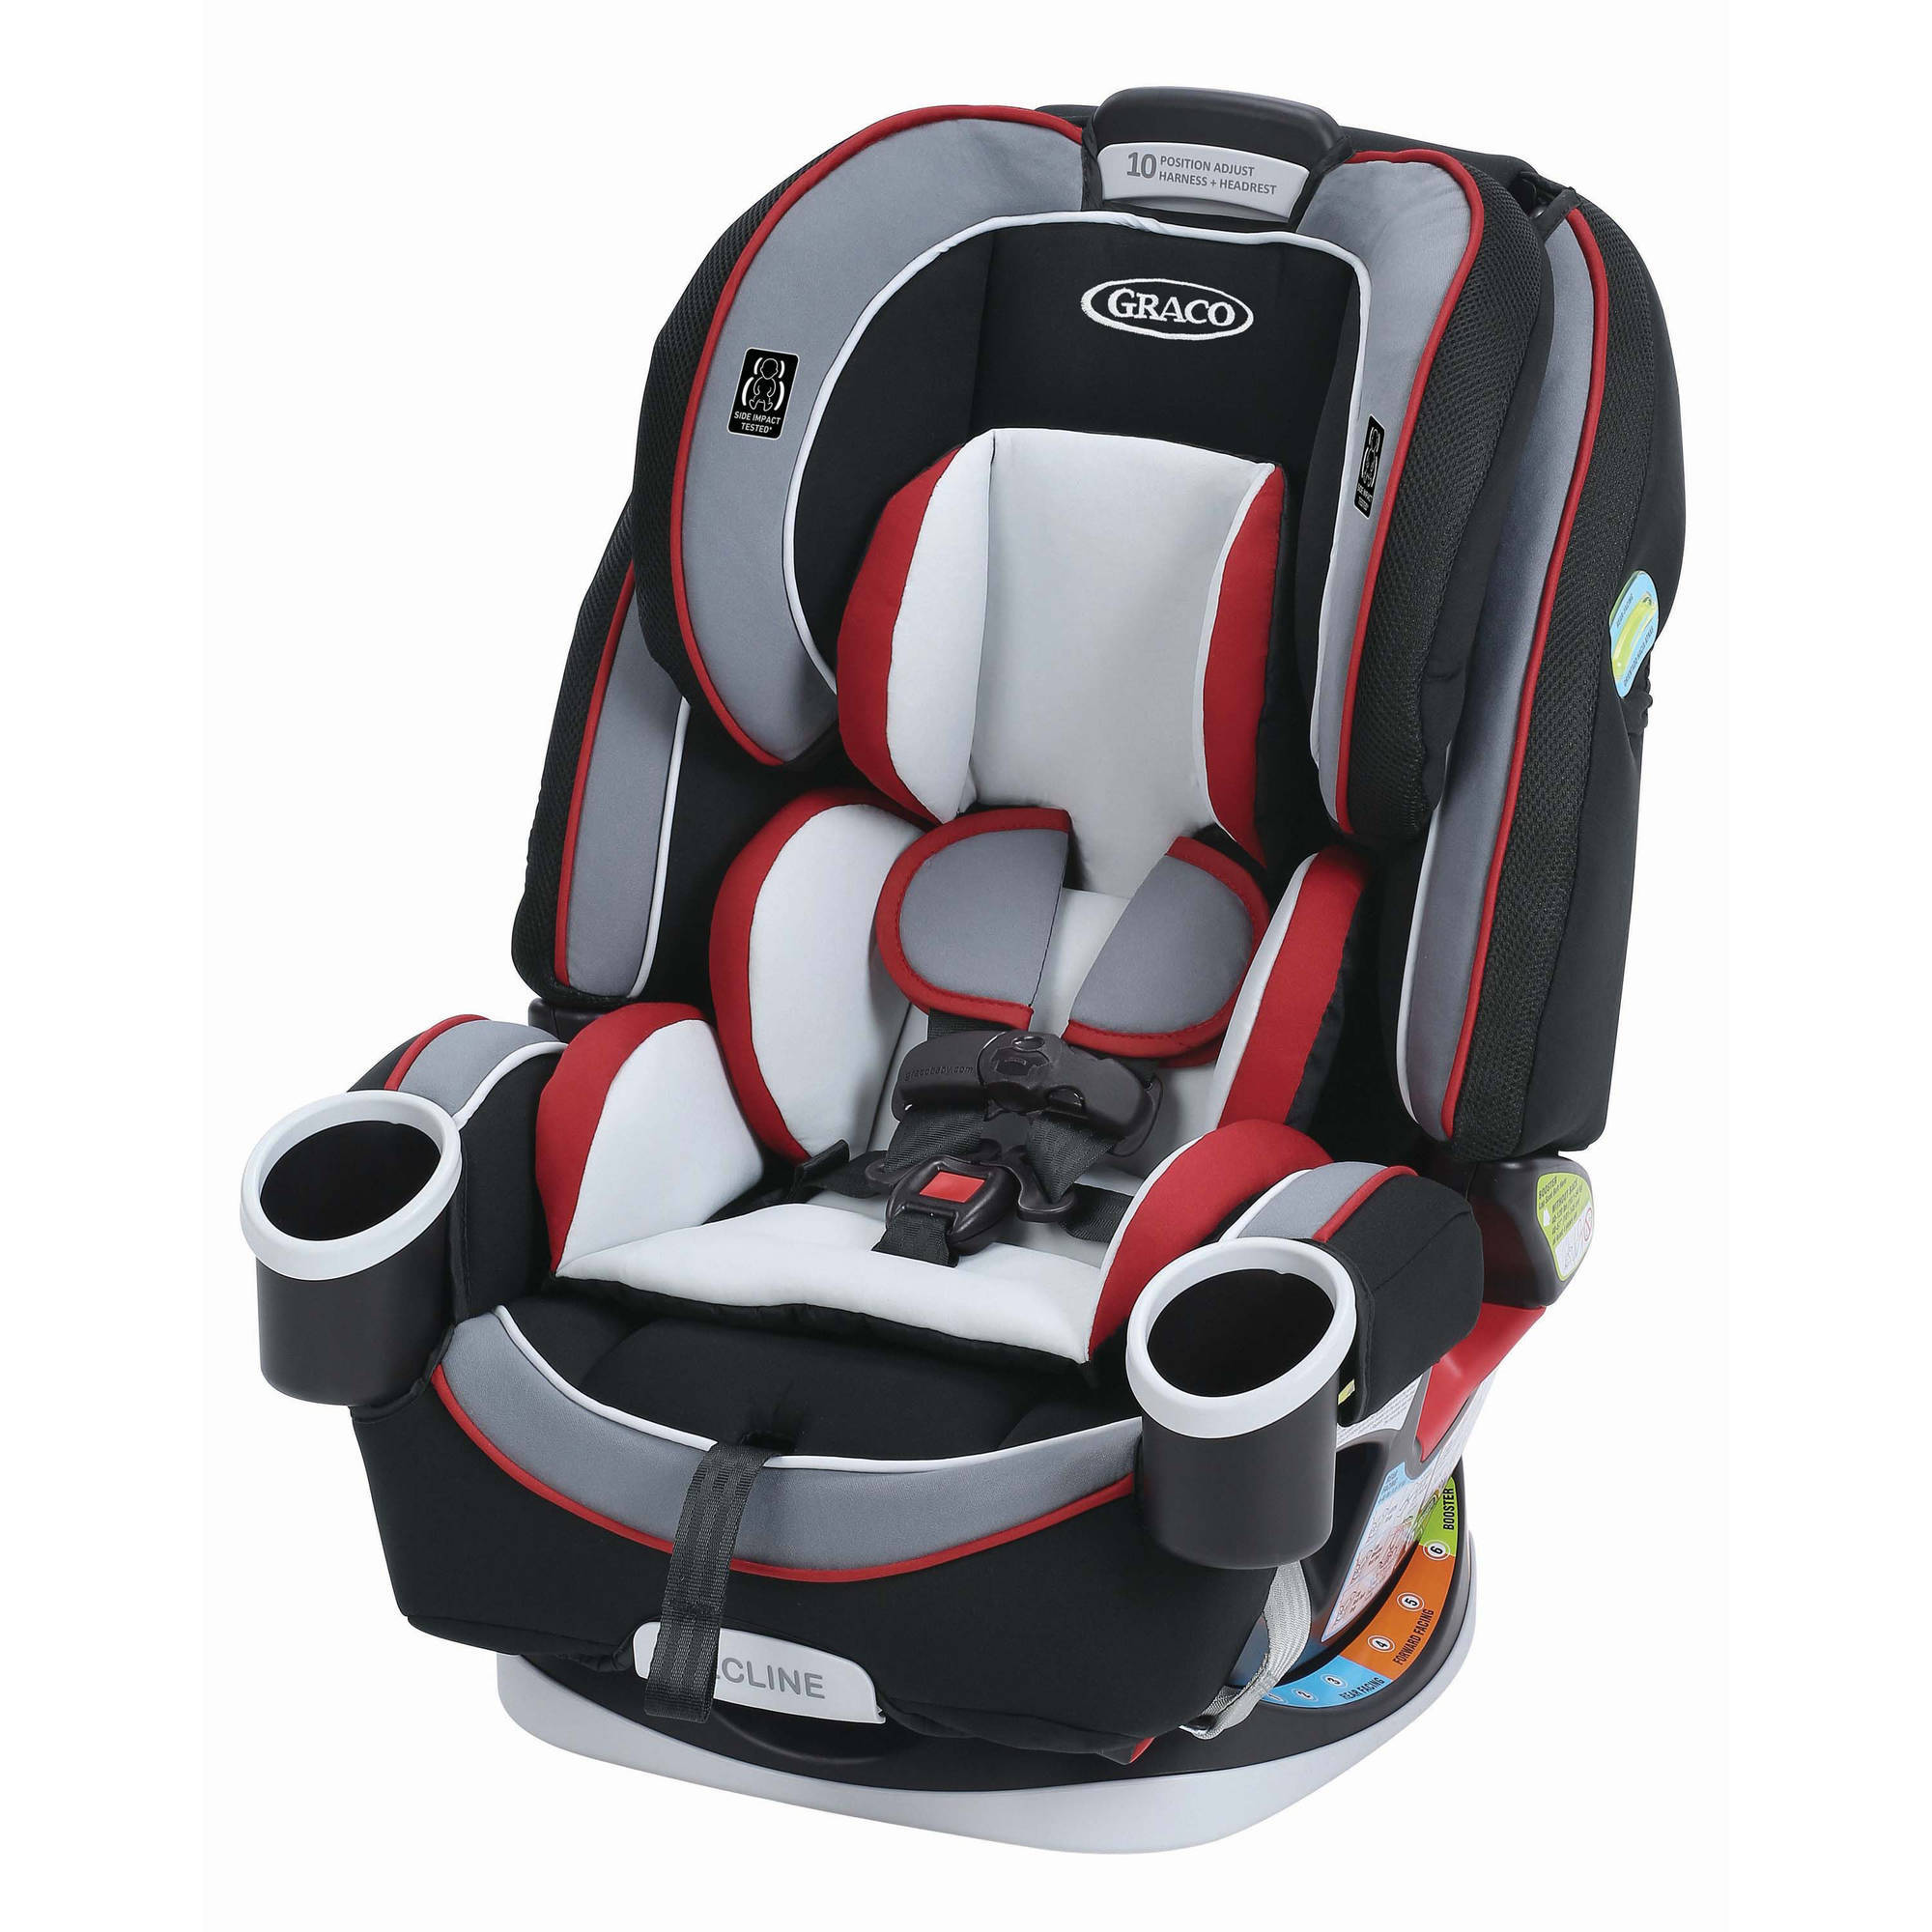 Graco 4Ever All in 1 Convertible Car Seat, Cougar